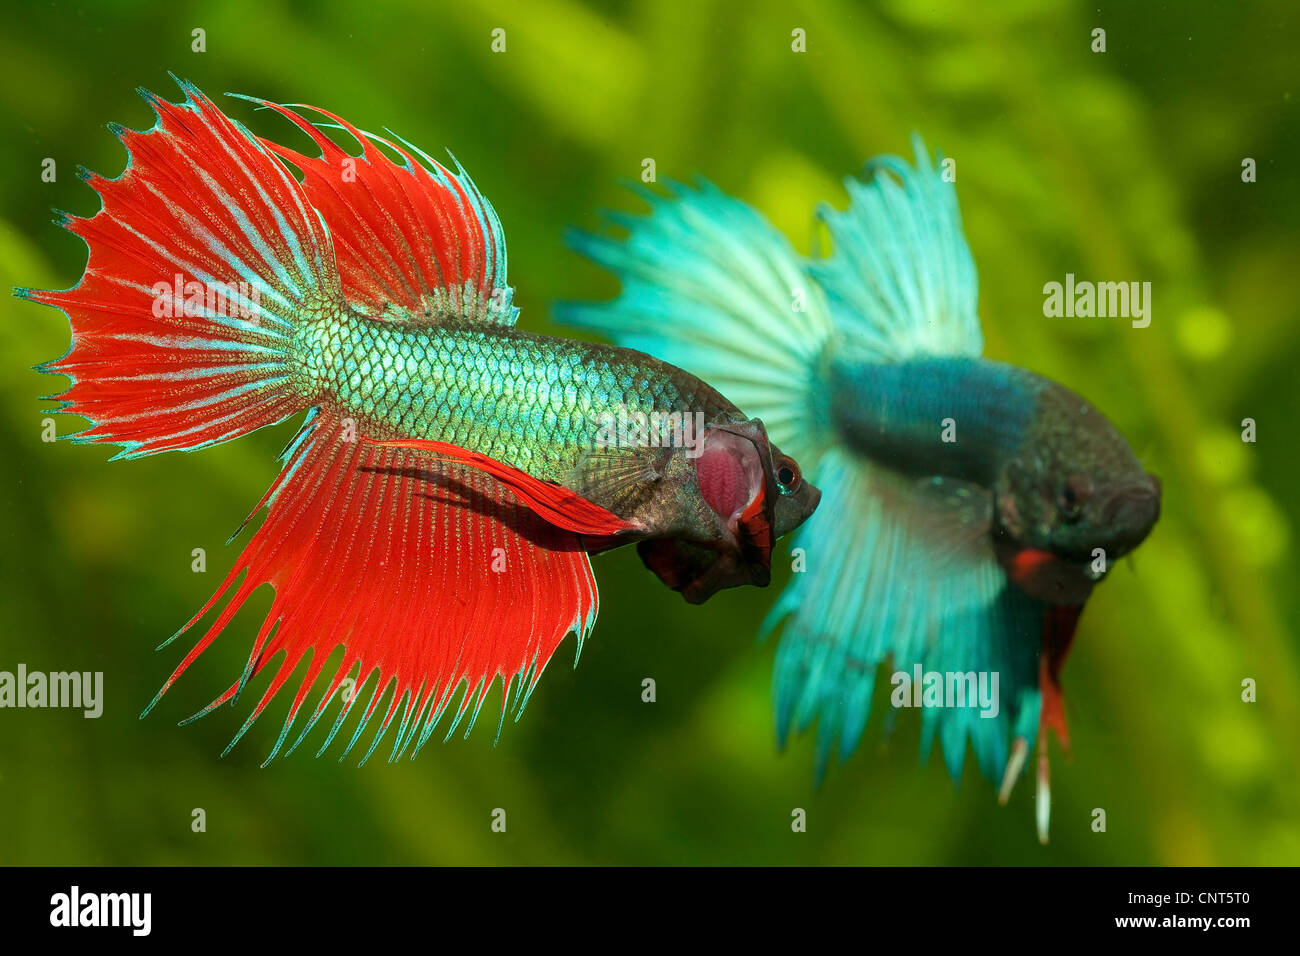 Betta Siamese Fighting Fish | Siamese Fighting Fish Betta Splendens Fighting Males Stock Photo